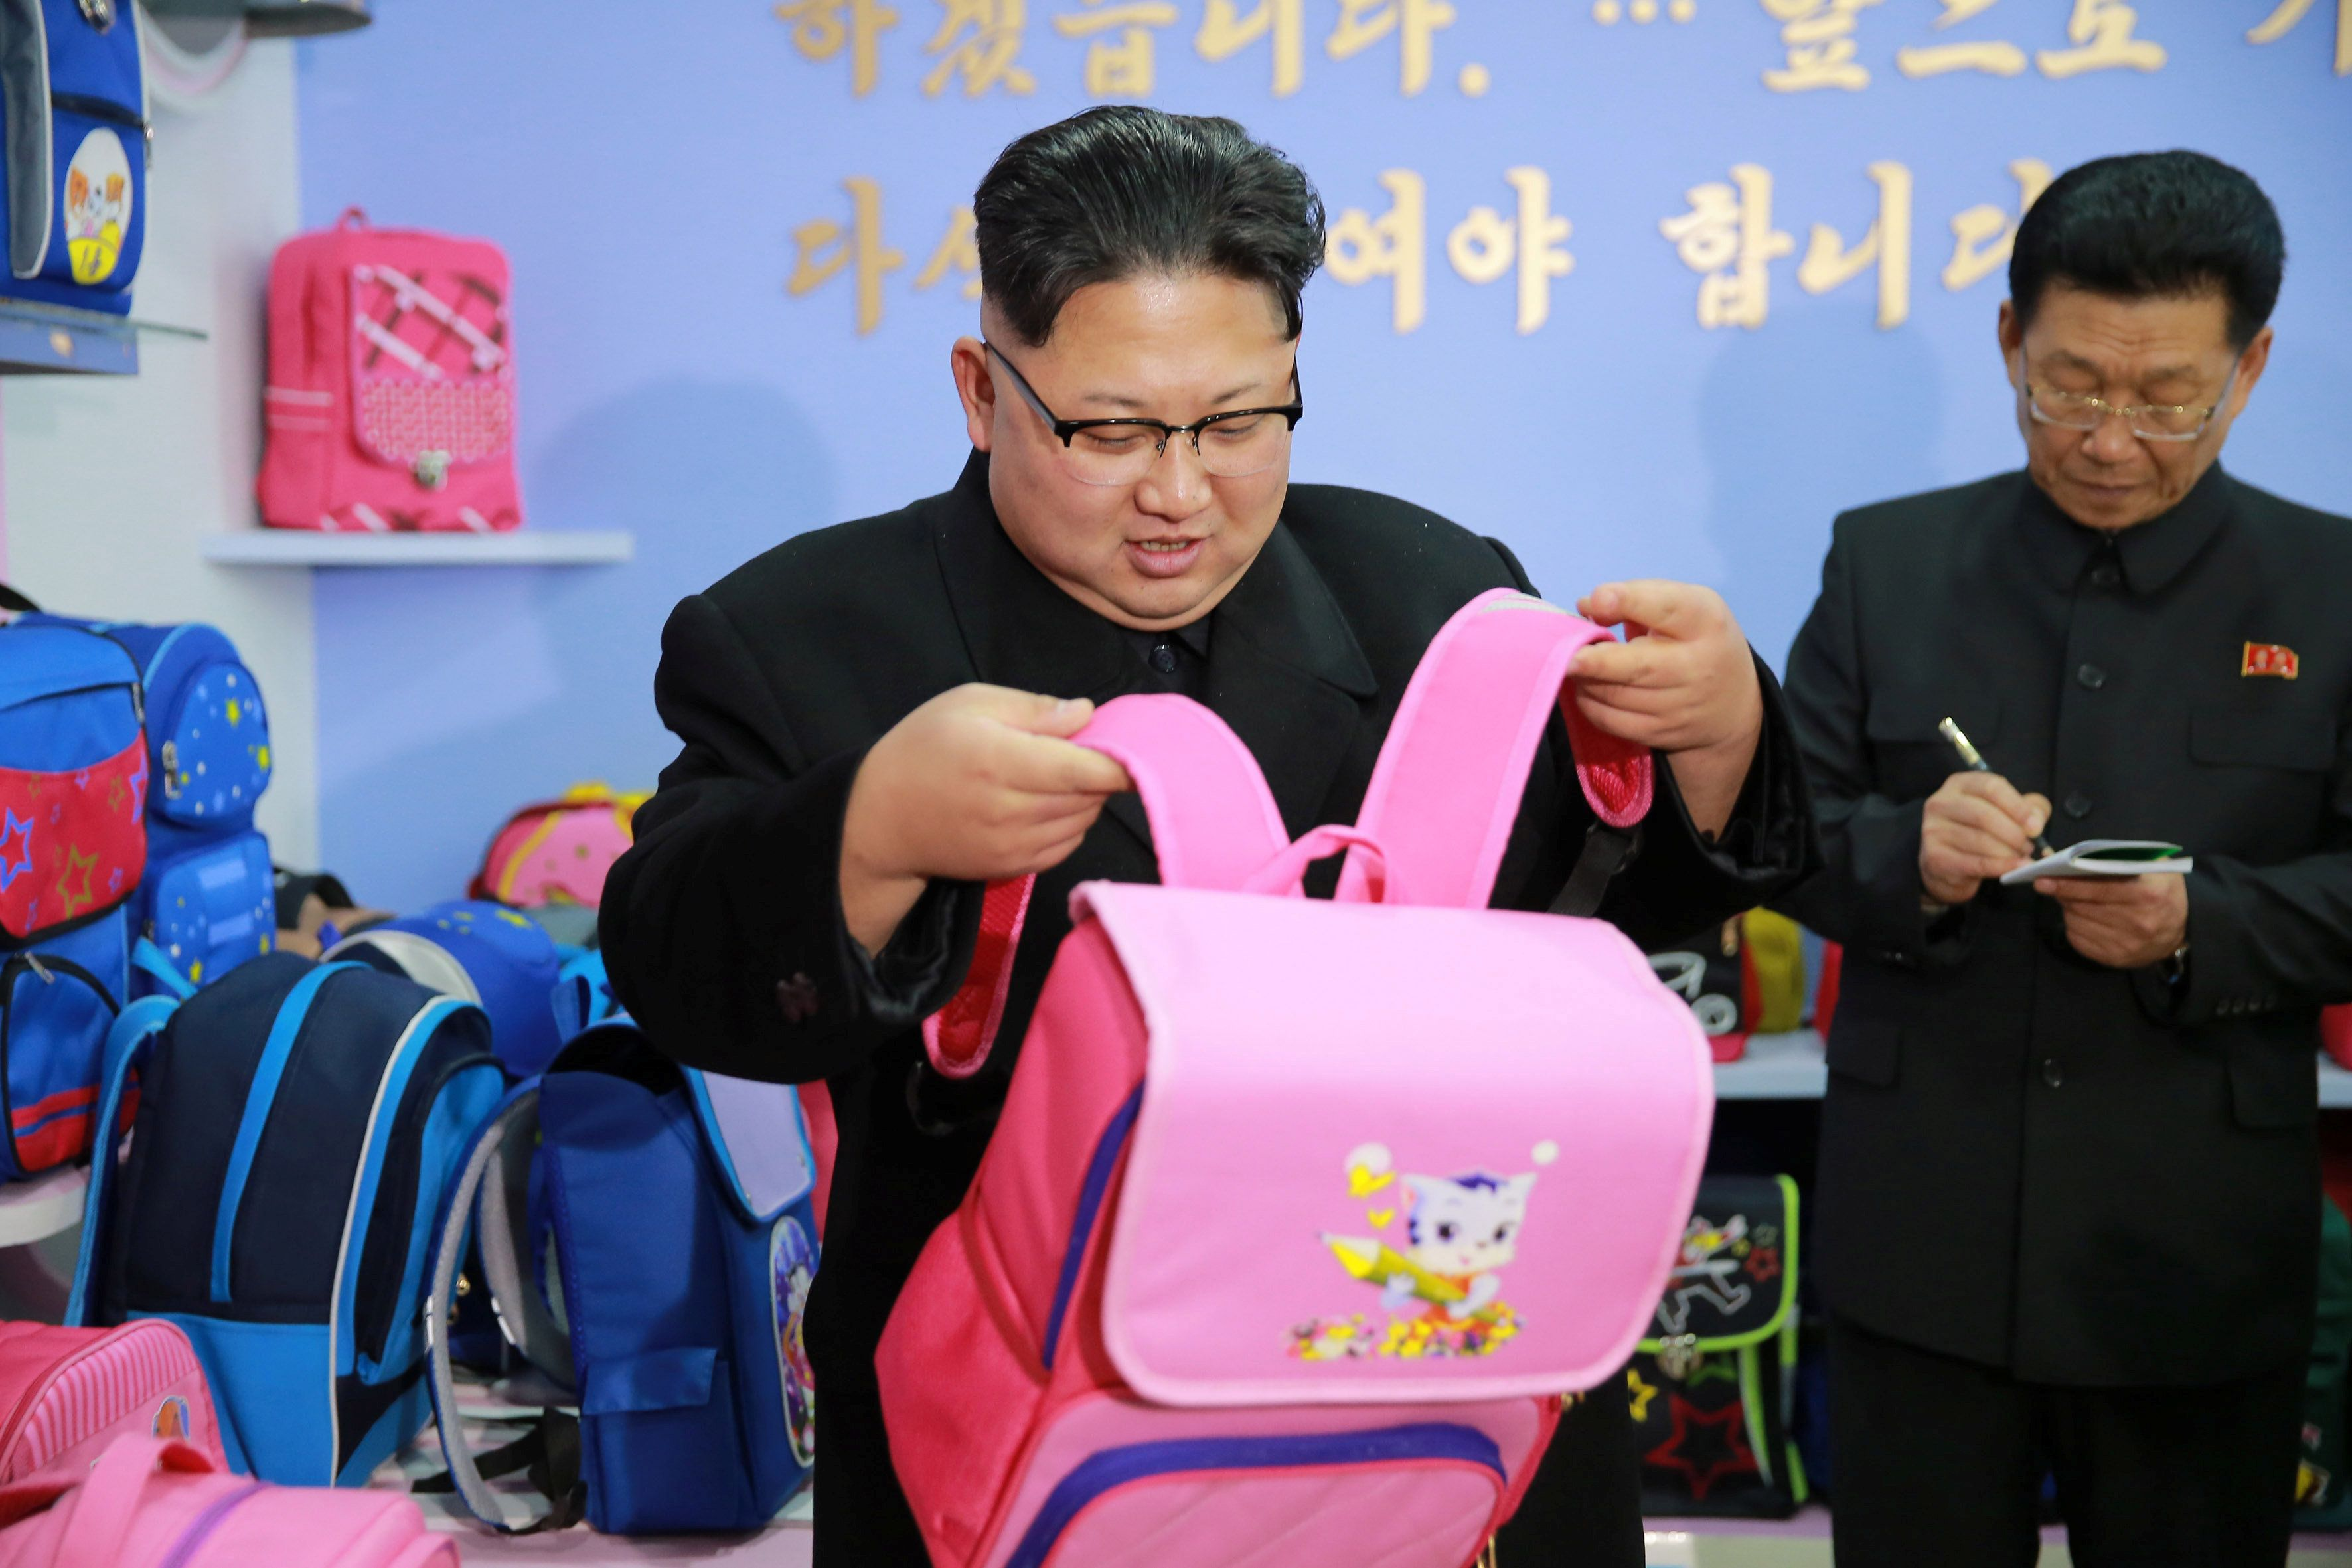 Redditors Have Fun And Games With Photo Of Kim Jong Un Inspecting A